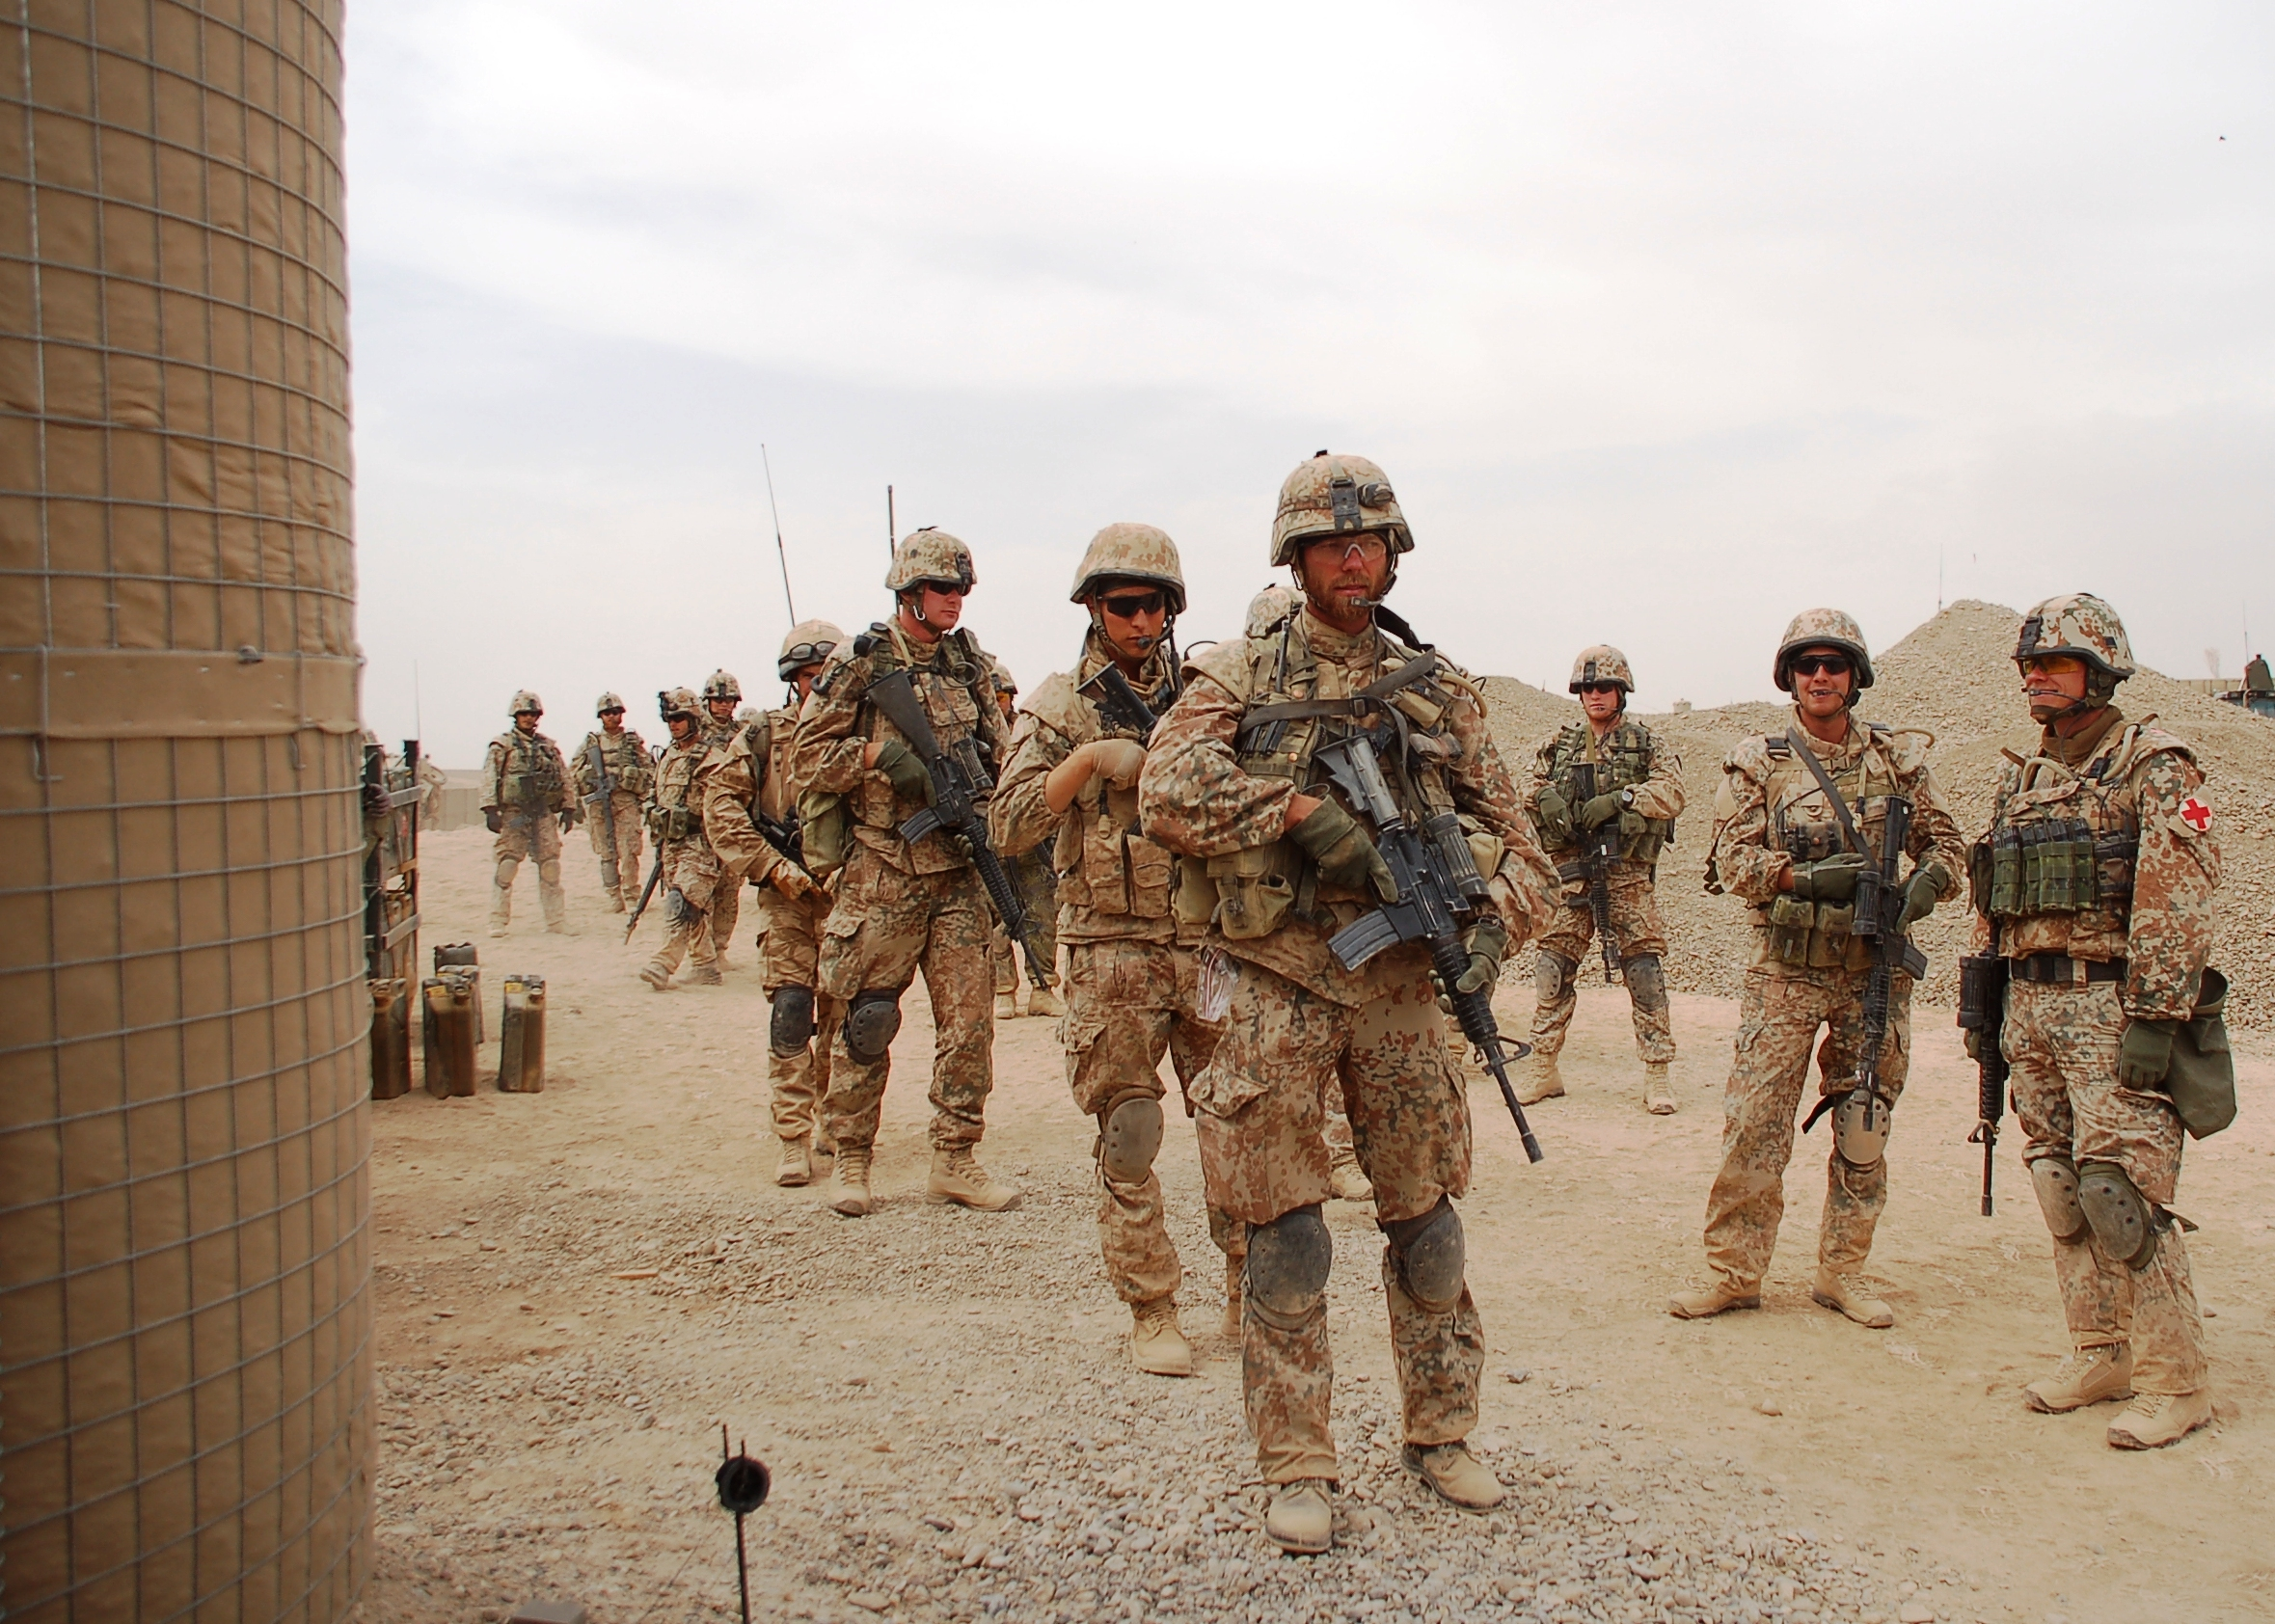 The Royal Life Guards going through the Green Zone from the Armadillo base. Photo: HOK, 2008